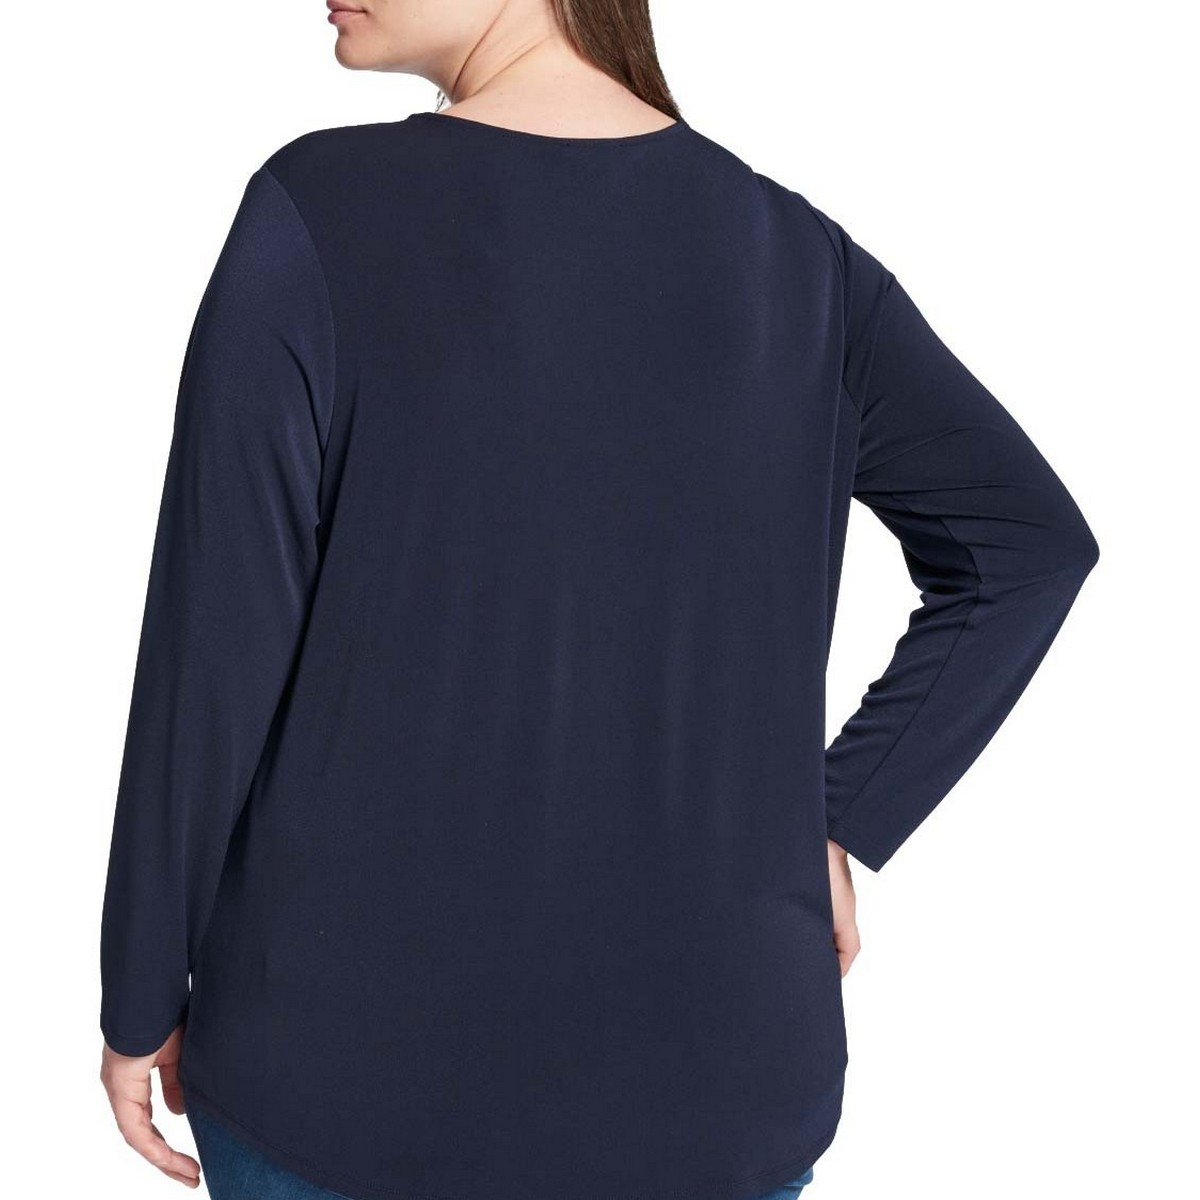 TOMMY-HILFIGER-NEW-Women-039-s-Plus-Size-Keyhole-Textured-Casual-Shirt-Top-TEDO thumbnail 5